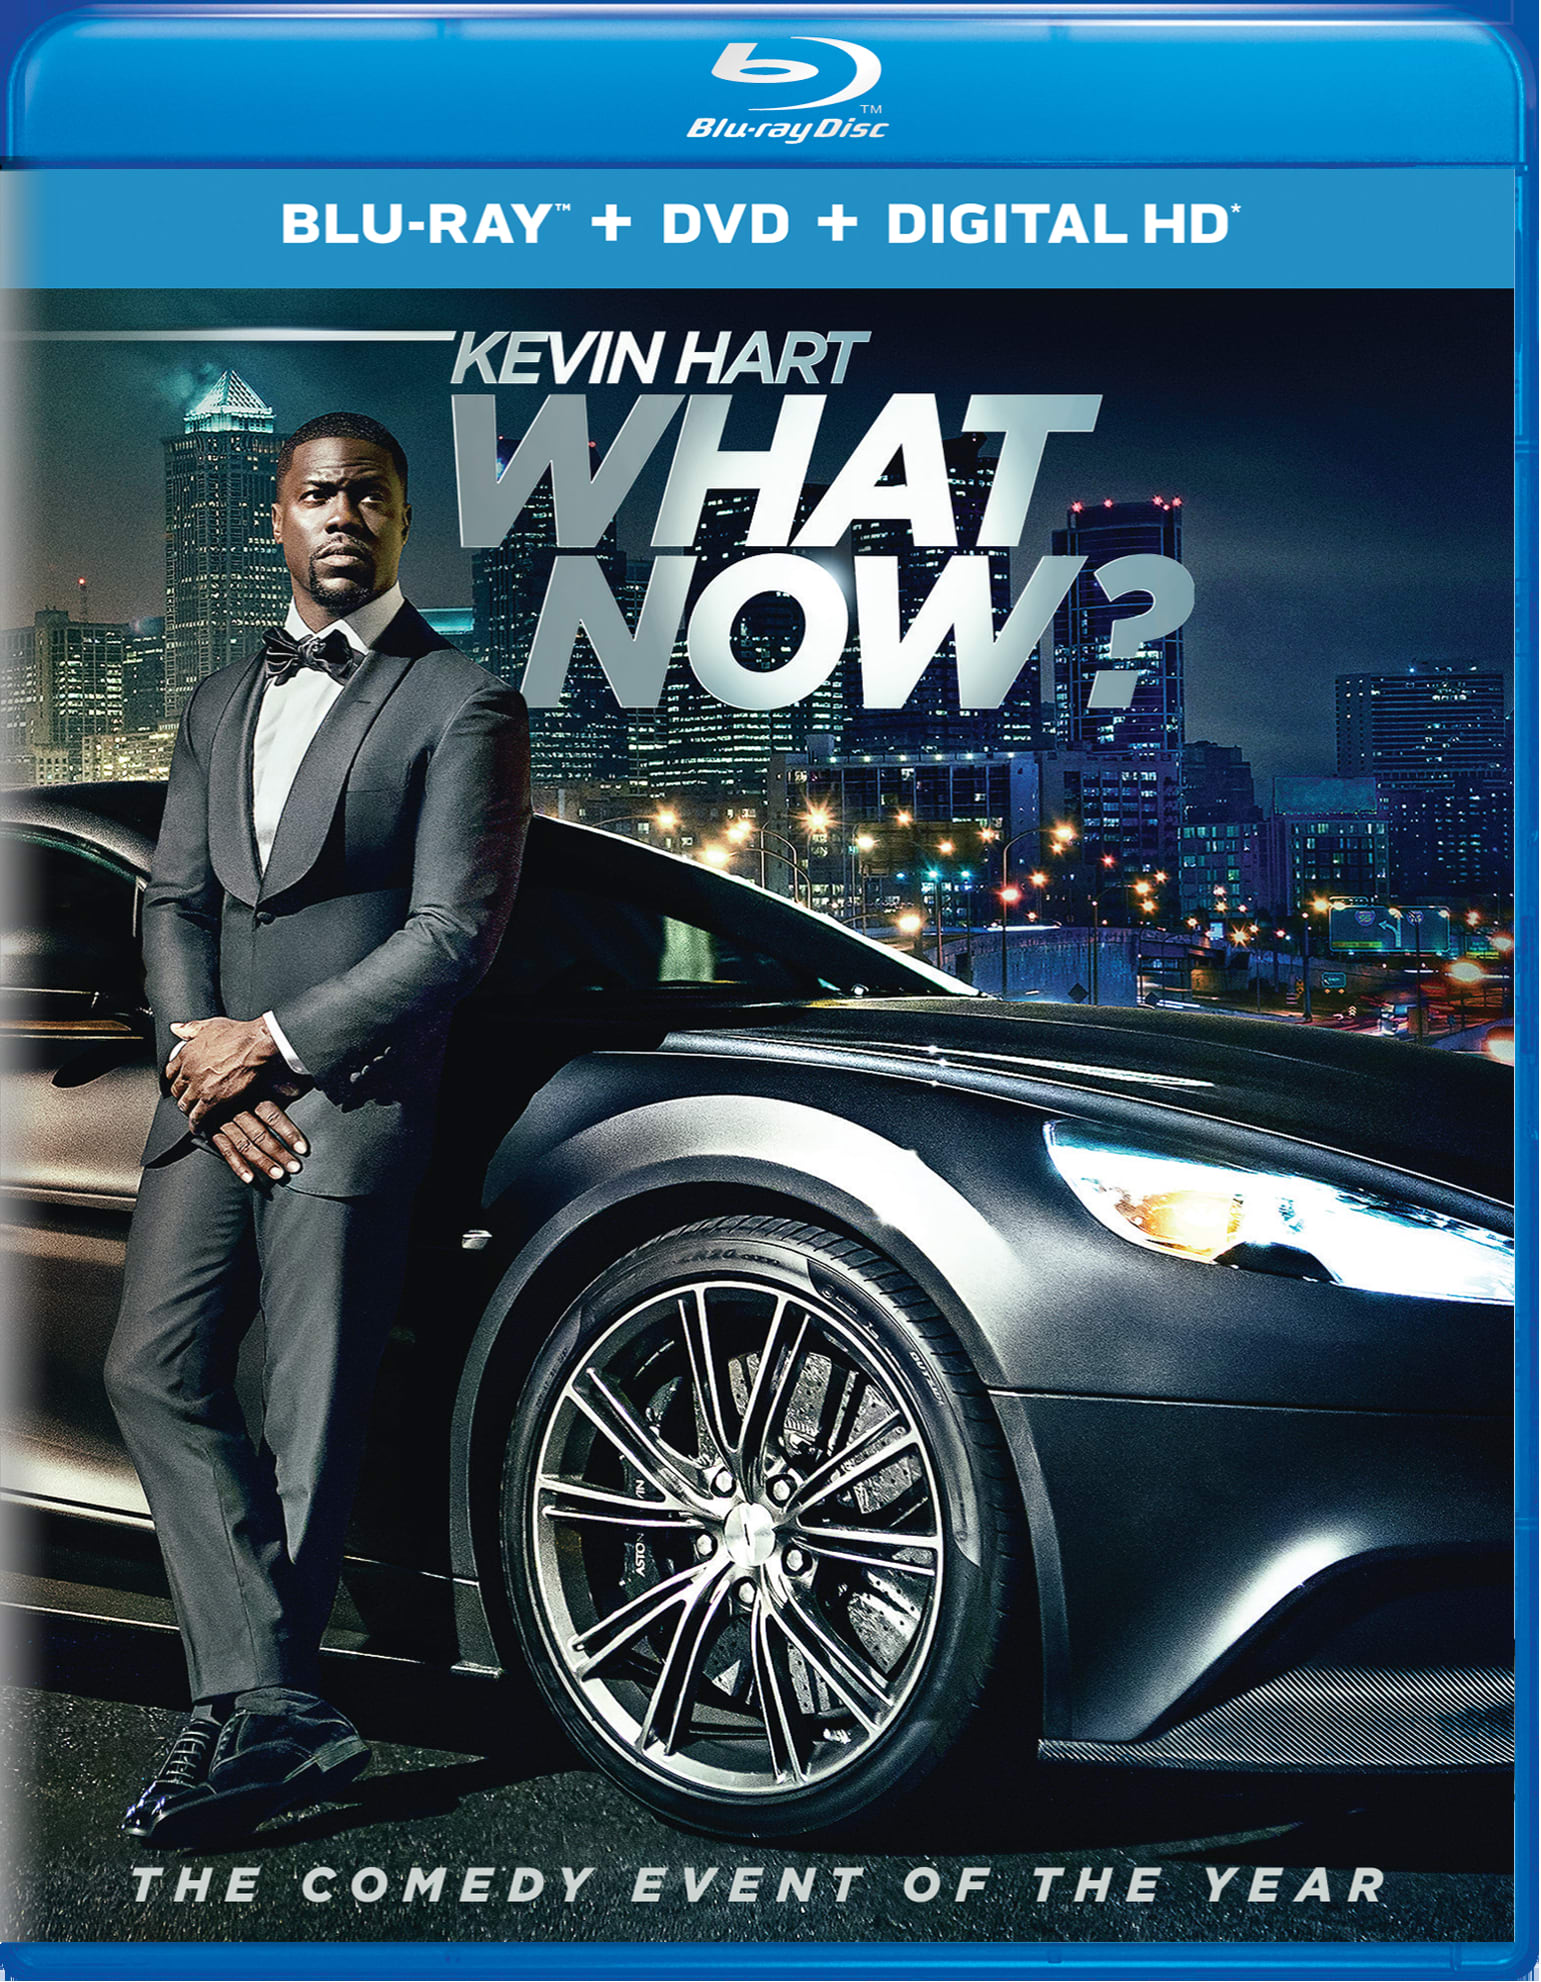 Kevin Hart - What Now? (DVD + Digital) [Blu-ray]